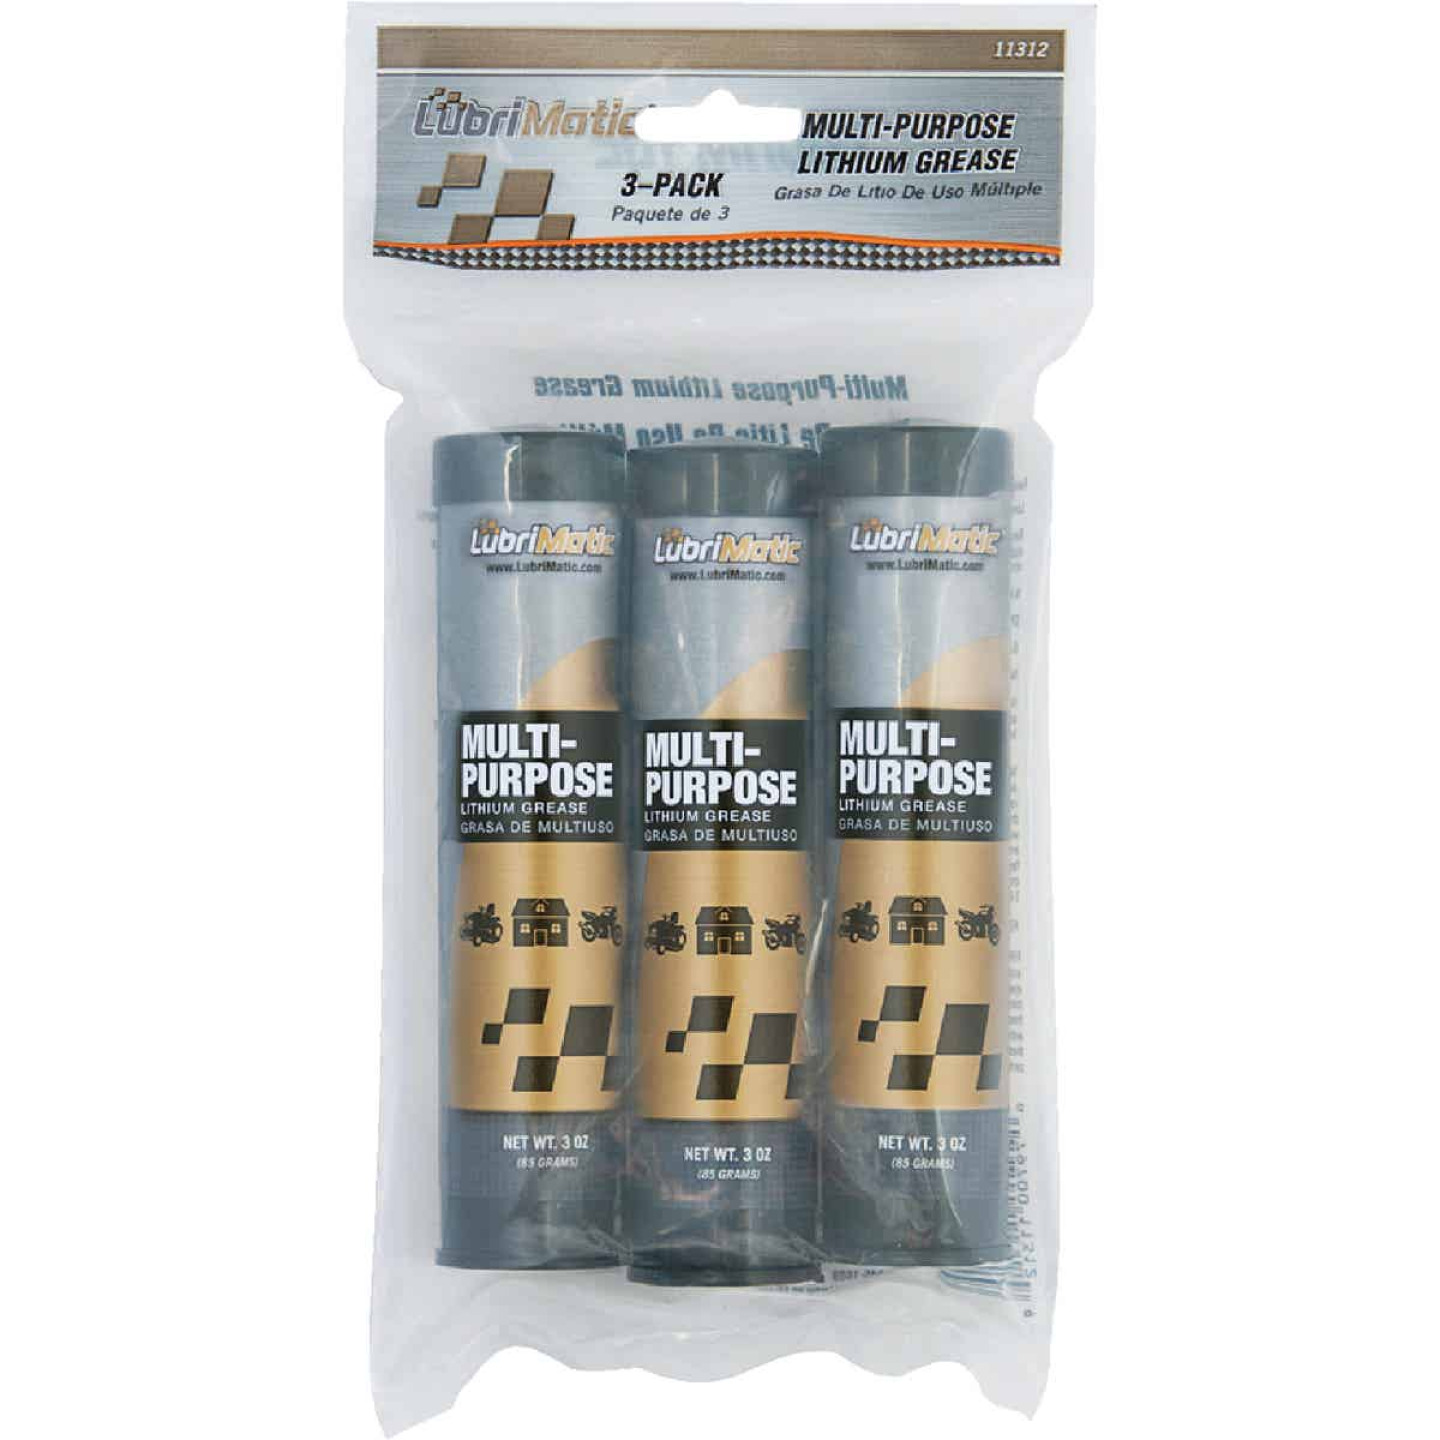 LubriMatic 3 Oz. Cartridge Multi-Purpose Lithium Grease (3-Pack) Image 1